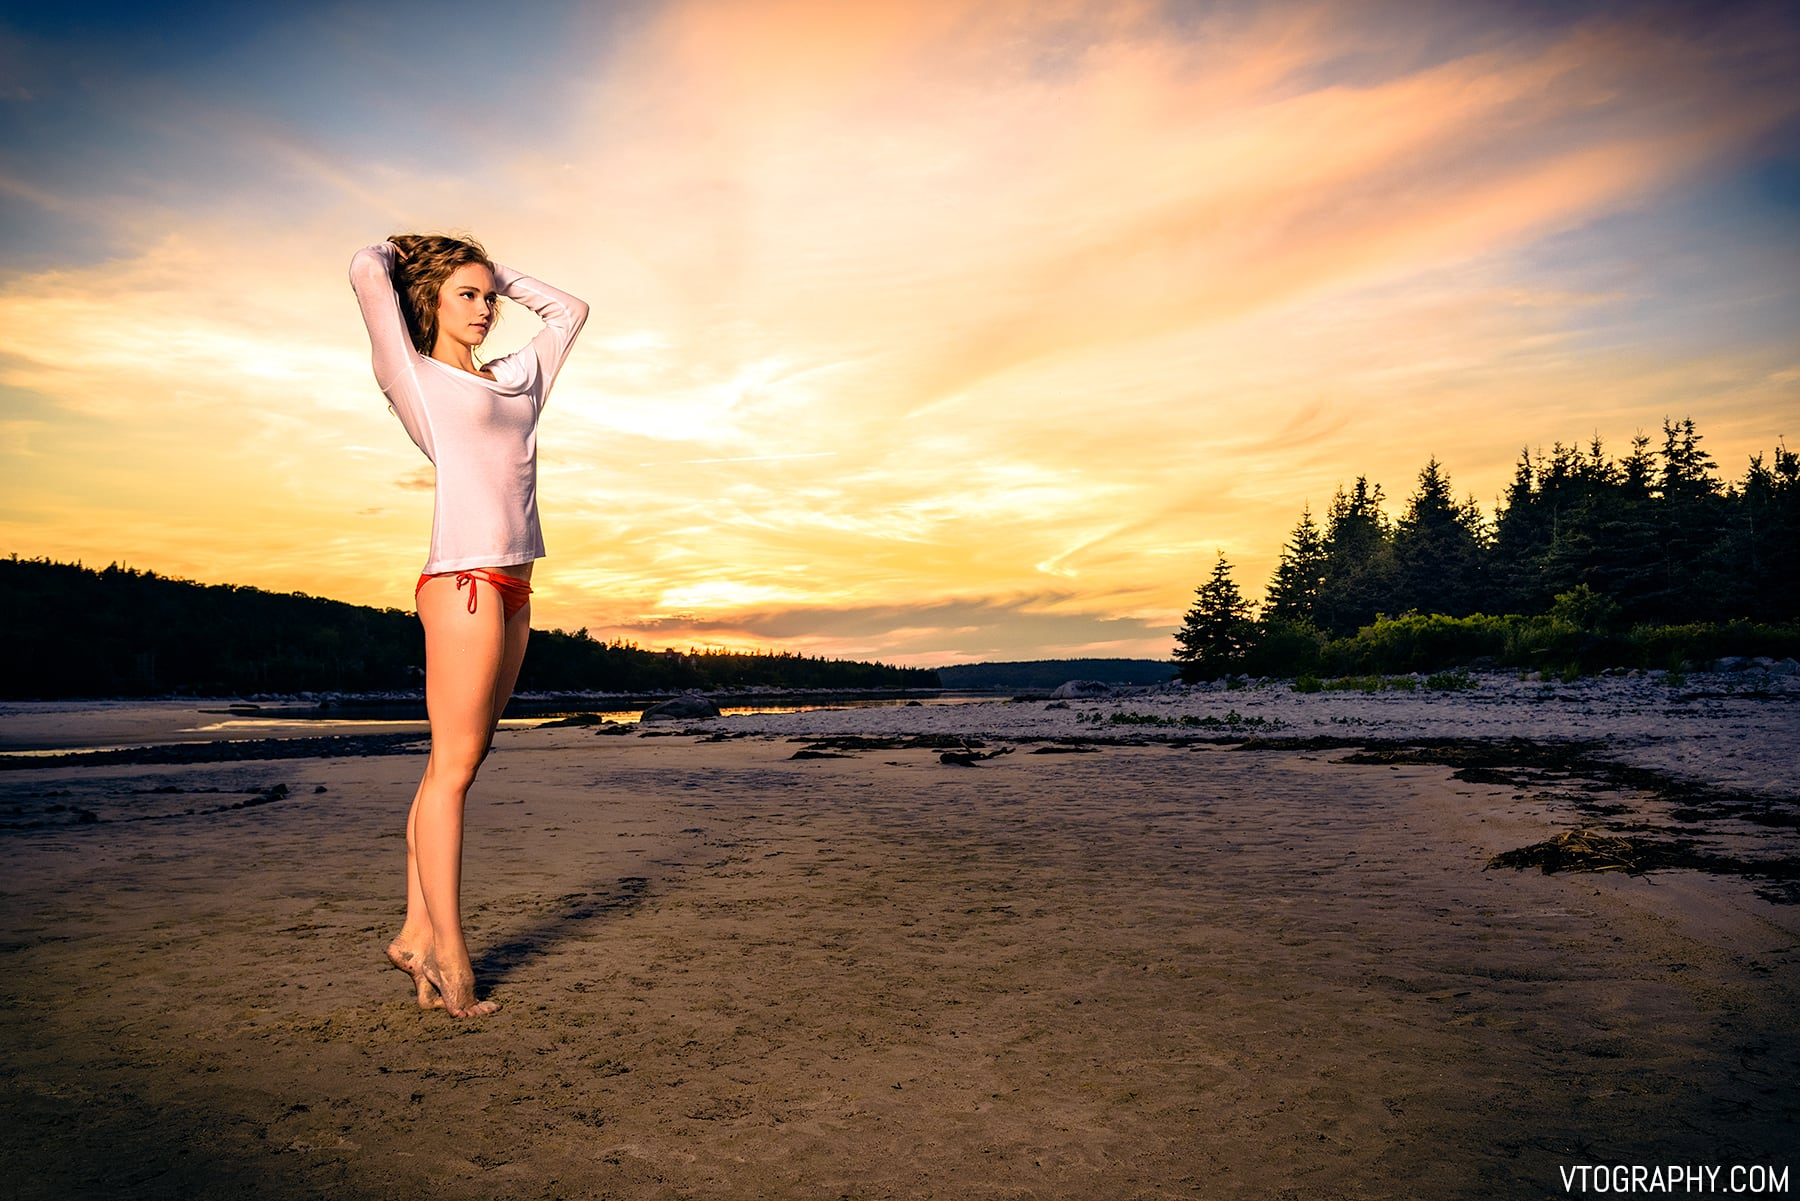 Carters Beach, Nova Scotia photo shoot with model Kathryn